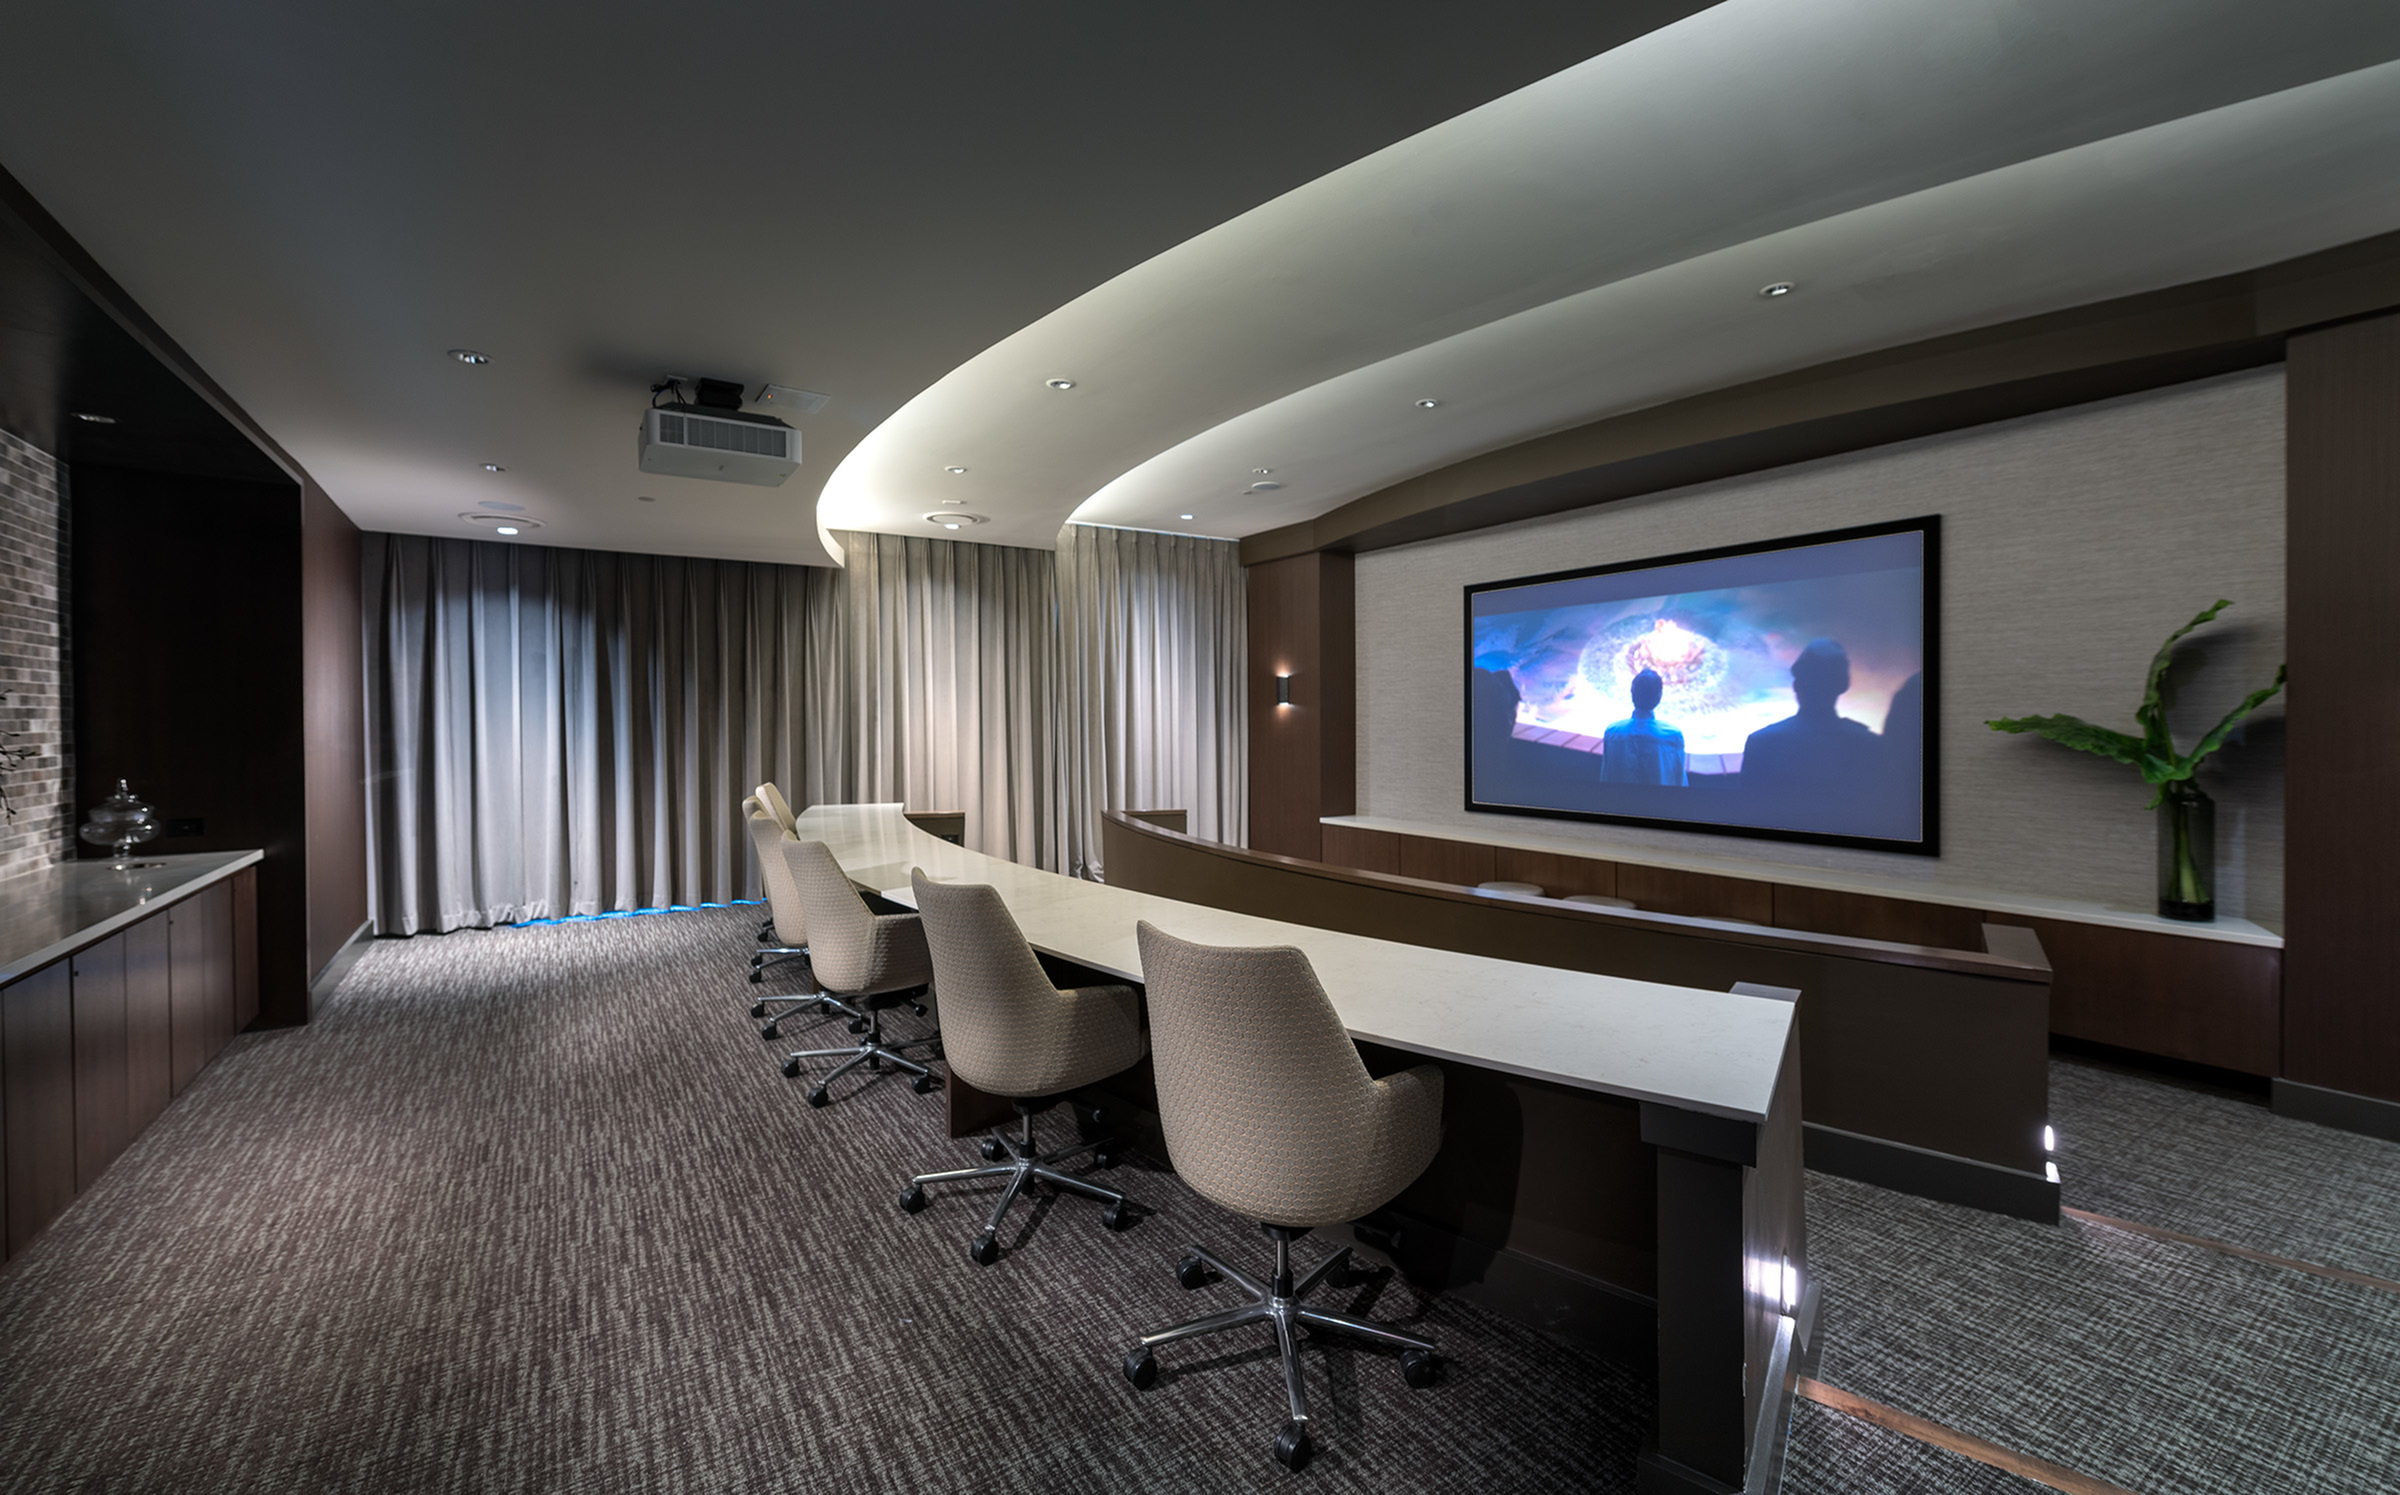 Hanover Dr. Phillips, Private media and screening room featuring surround-sound and stadium seating